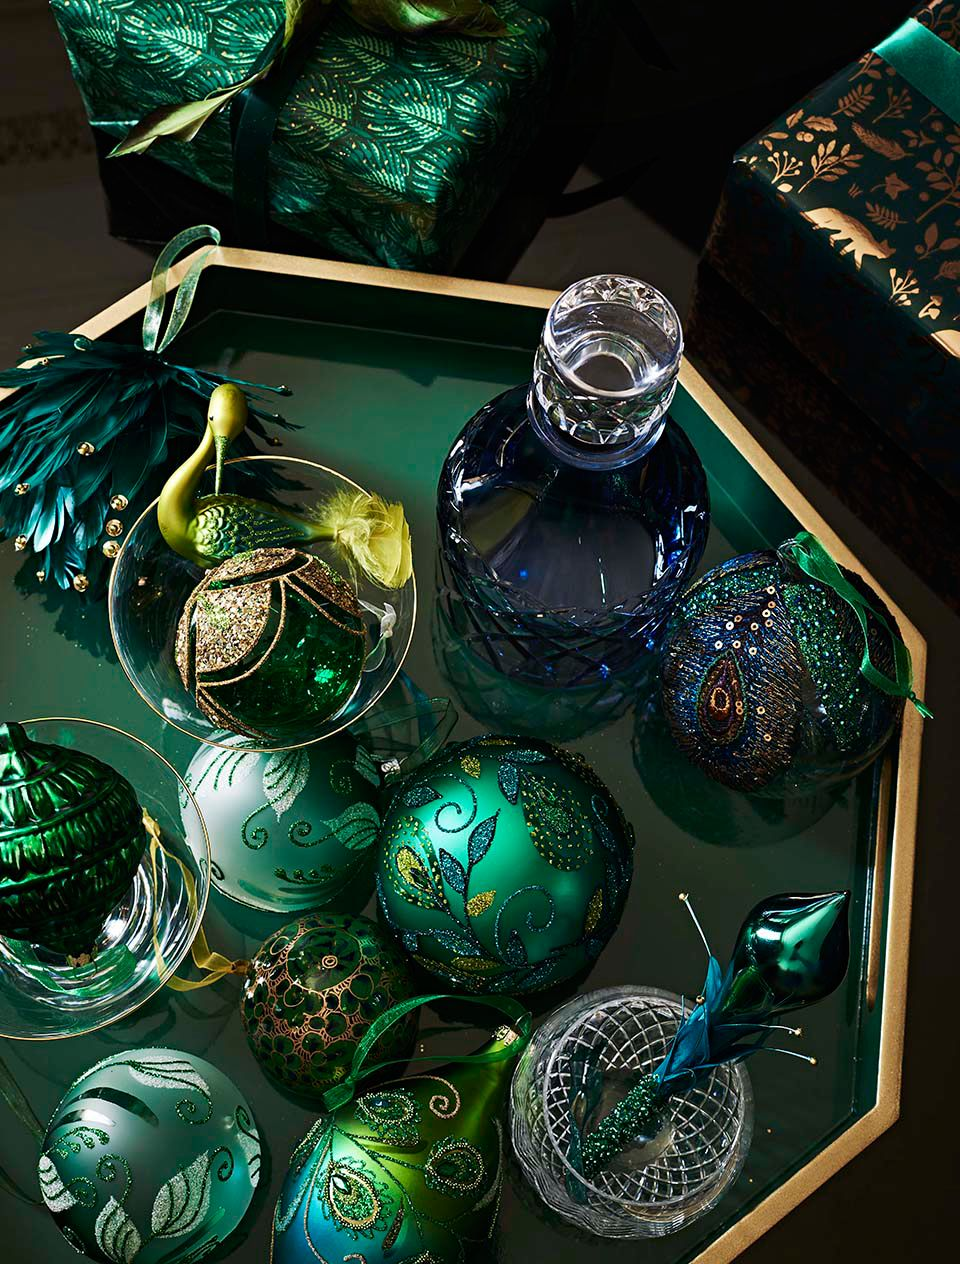 Baubles clustered on a table